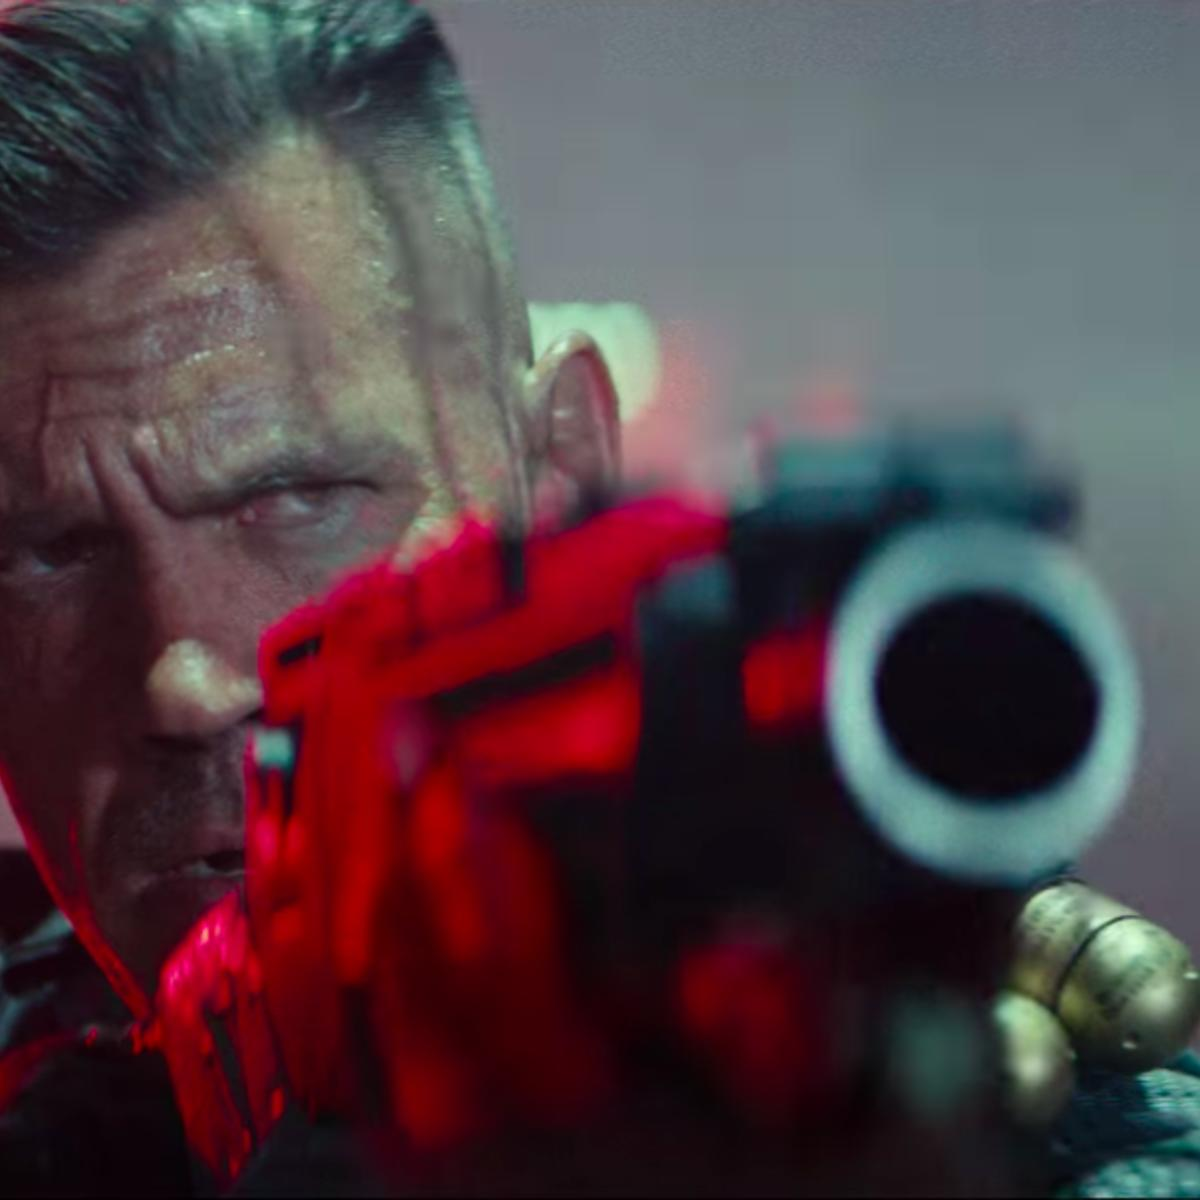 Cable - Josh Brolin